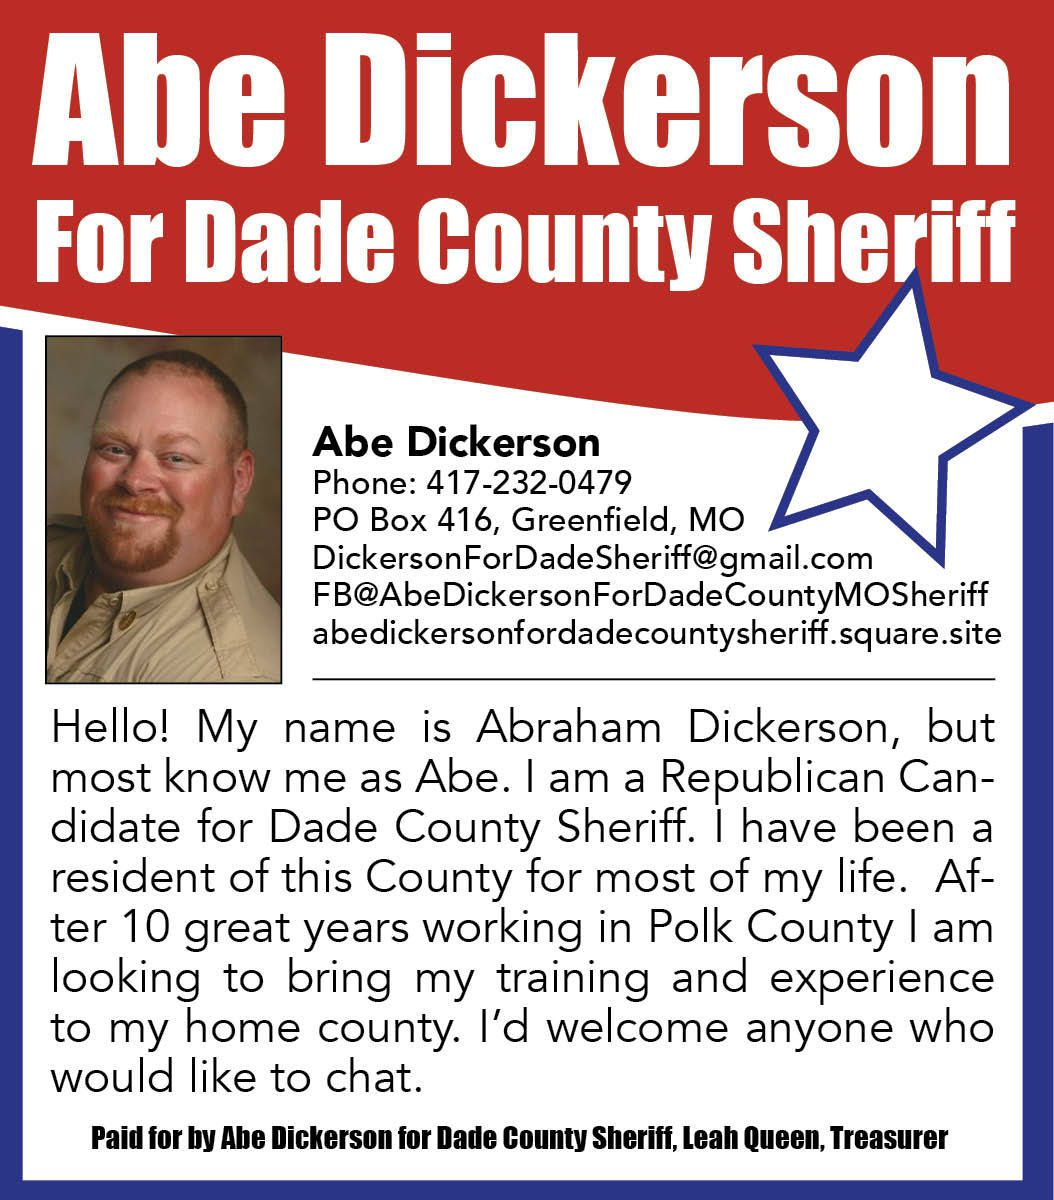 Abe Dickerson